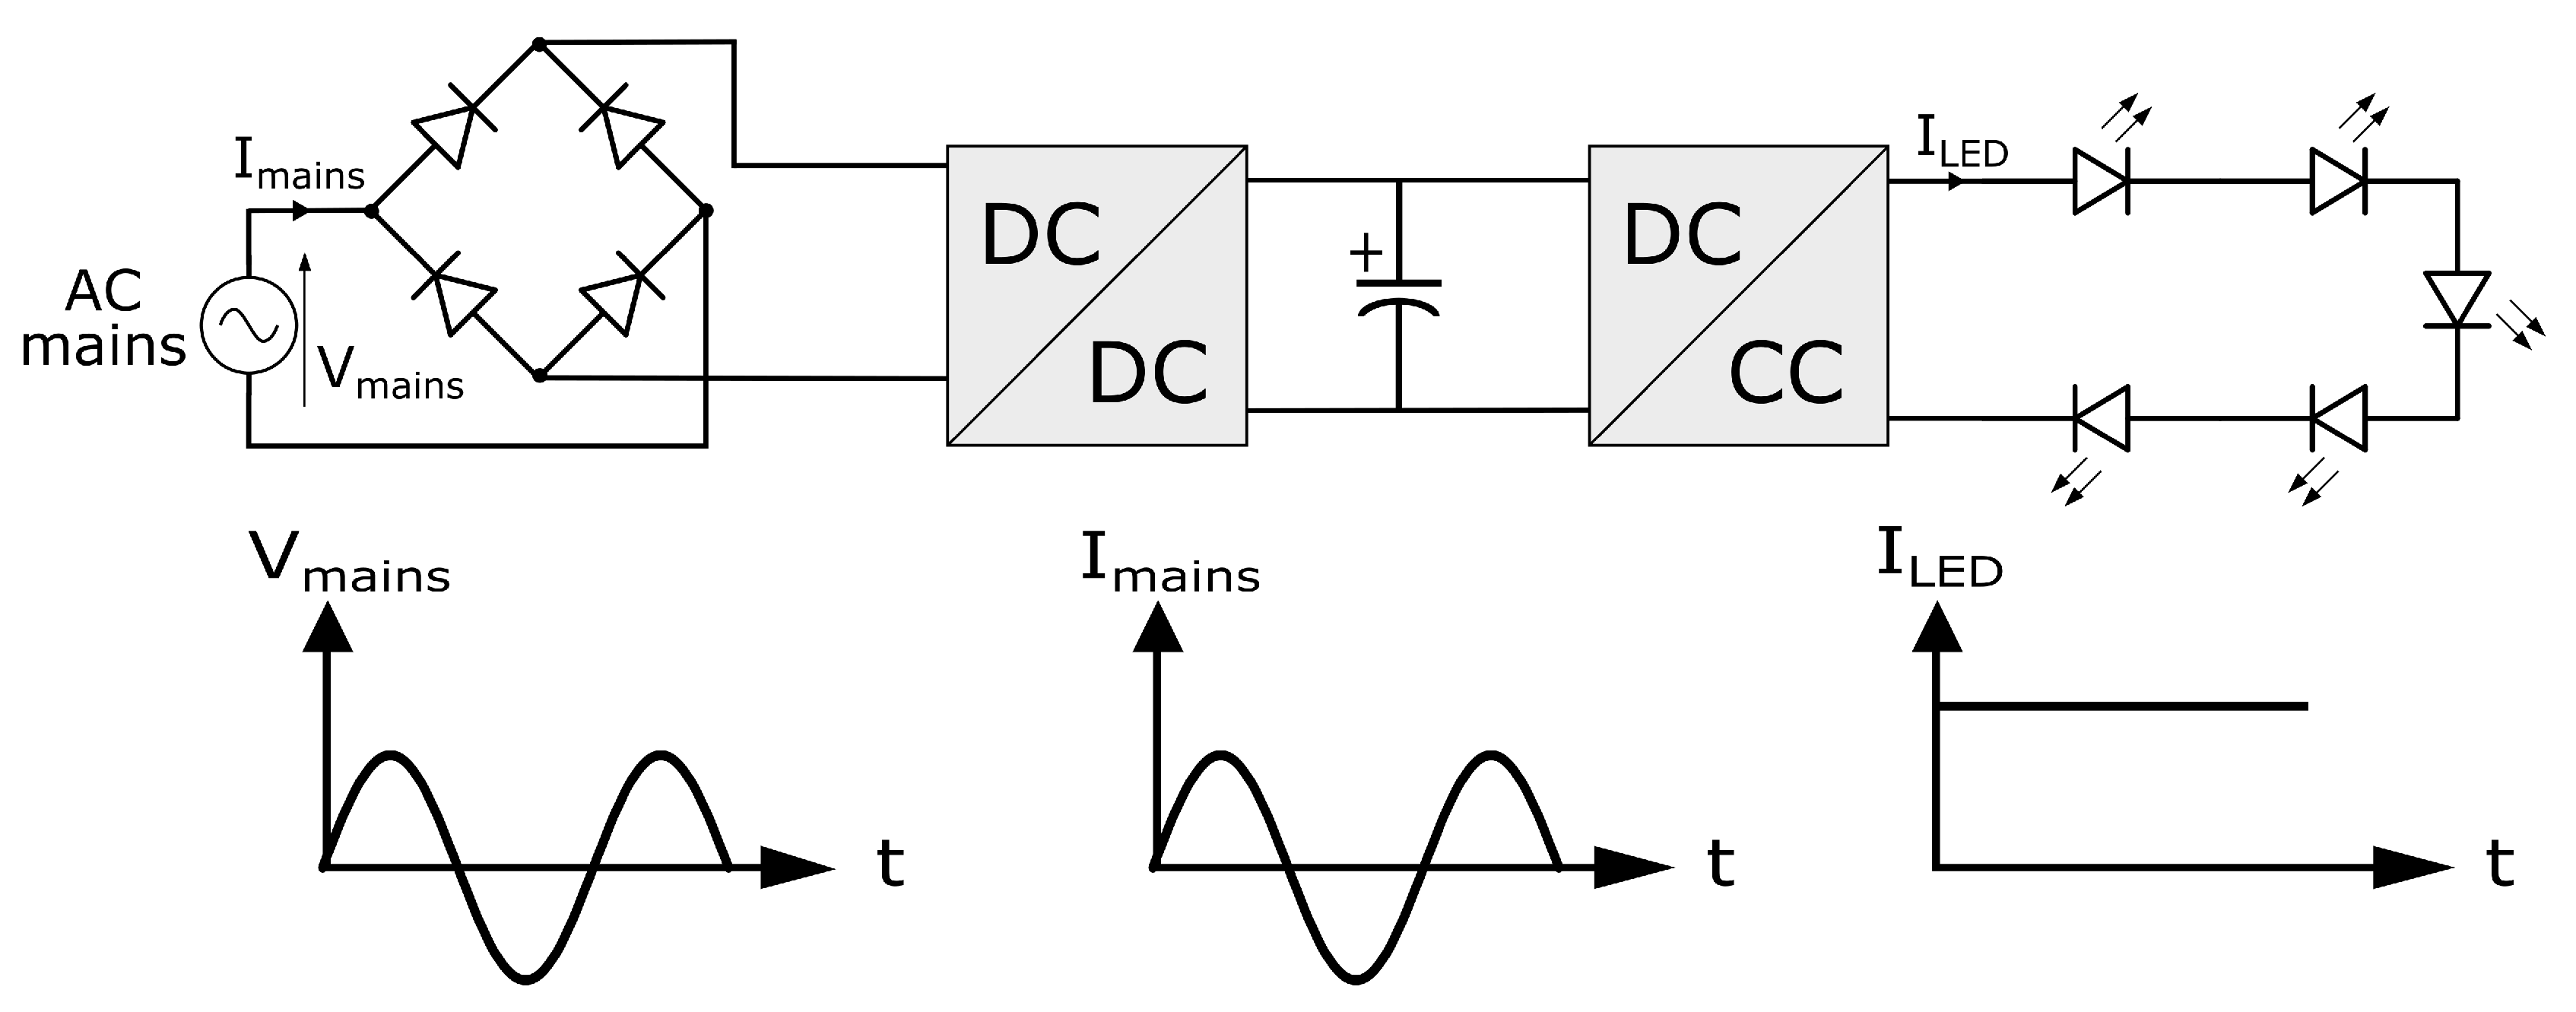 Energies Free Full Text Dc Grids For Smart Led Based Lighting Now We Are Feeding The Above Circuit With A Variable Supply Which Is 10 01454 G004